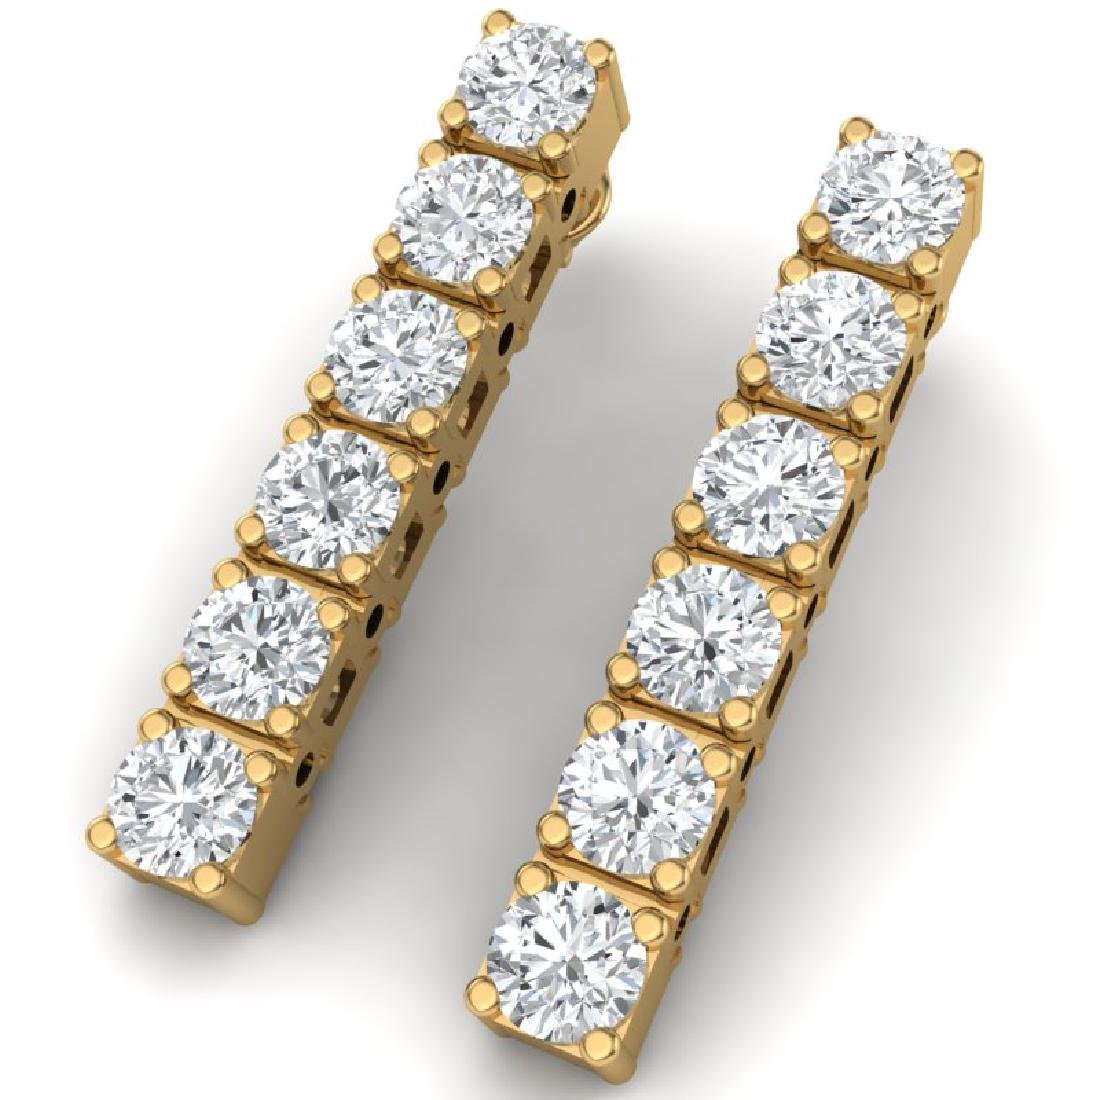 6 CTW Certified SI Diamond Earrings 18K Yellow Gold